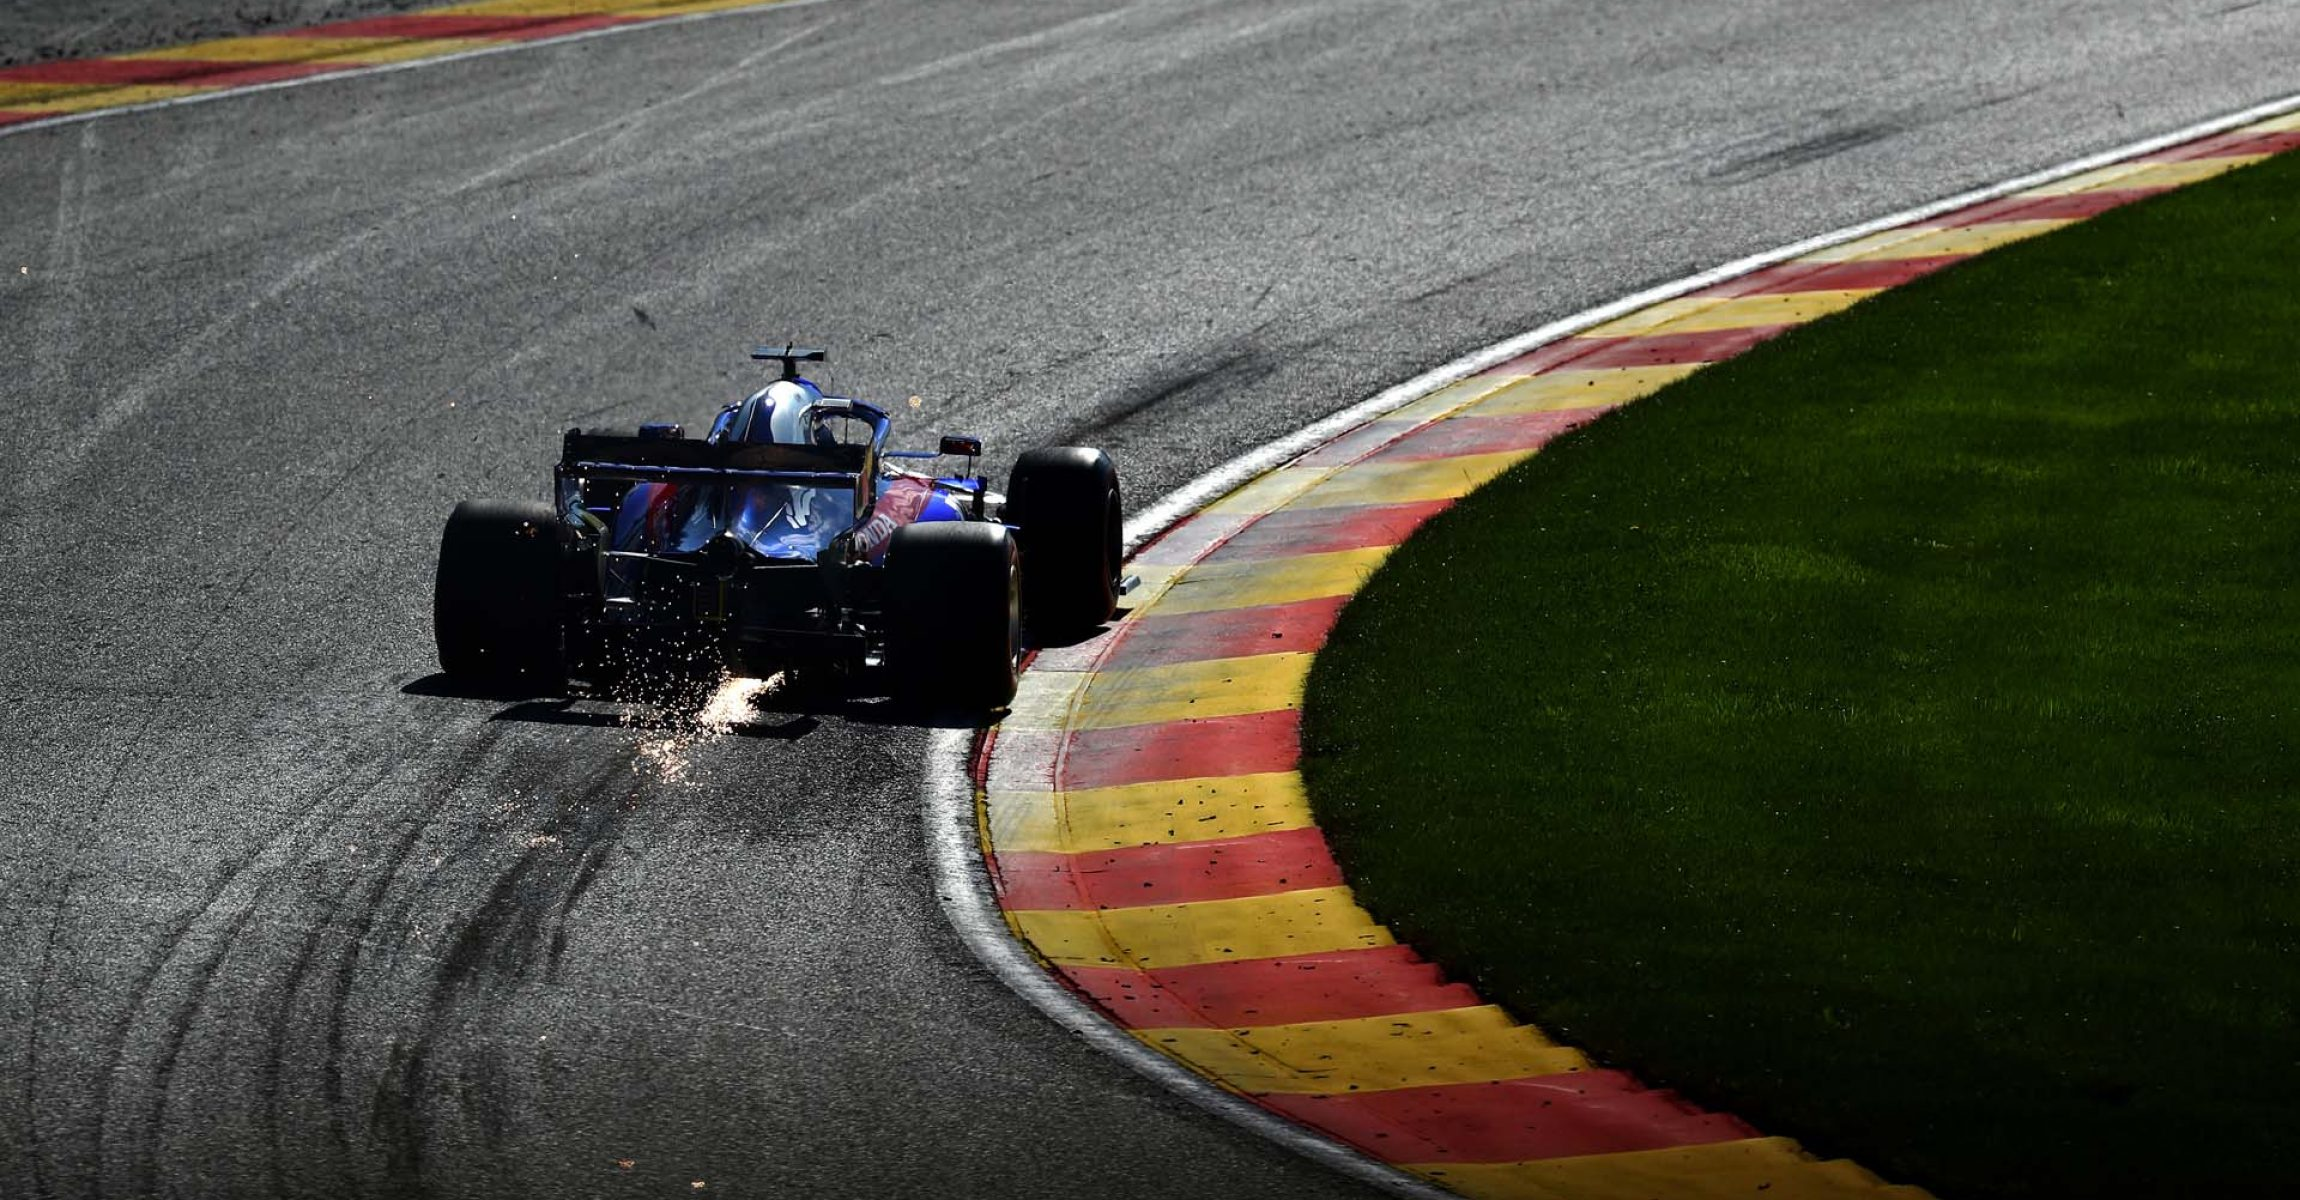 SPA, BELGIUM - AUGUST 31: Daniil Kvyat driving the (26) Scuderia Toro Rosso STR14 Honda on track during final practice for the F1 Grand Prix of Belgium at Circuit de Spa-Francorchamps on August 31, 2019 in Spa, Belgium. (Photo by Dean Mouhtaropoulos/Getty Images) // Getty Images / Red Bull Content Pool // AP-21E75C6P12111 // Usage for editorial use only //